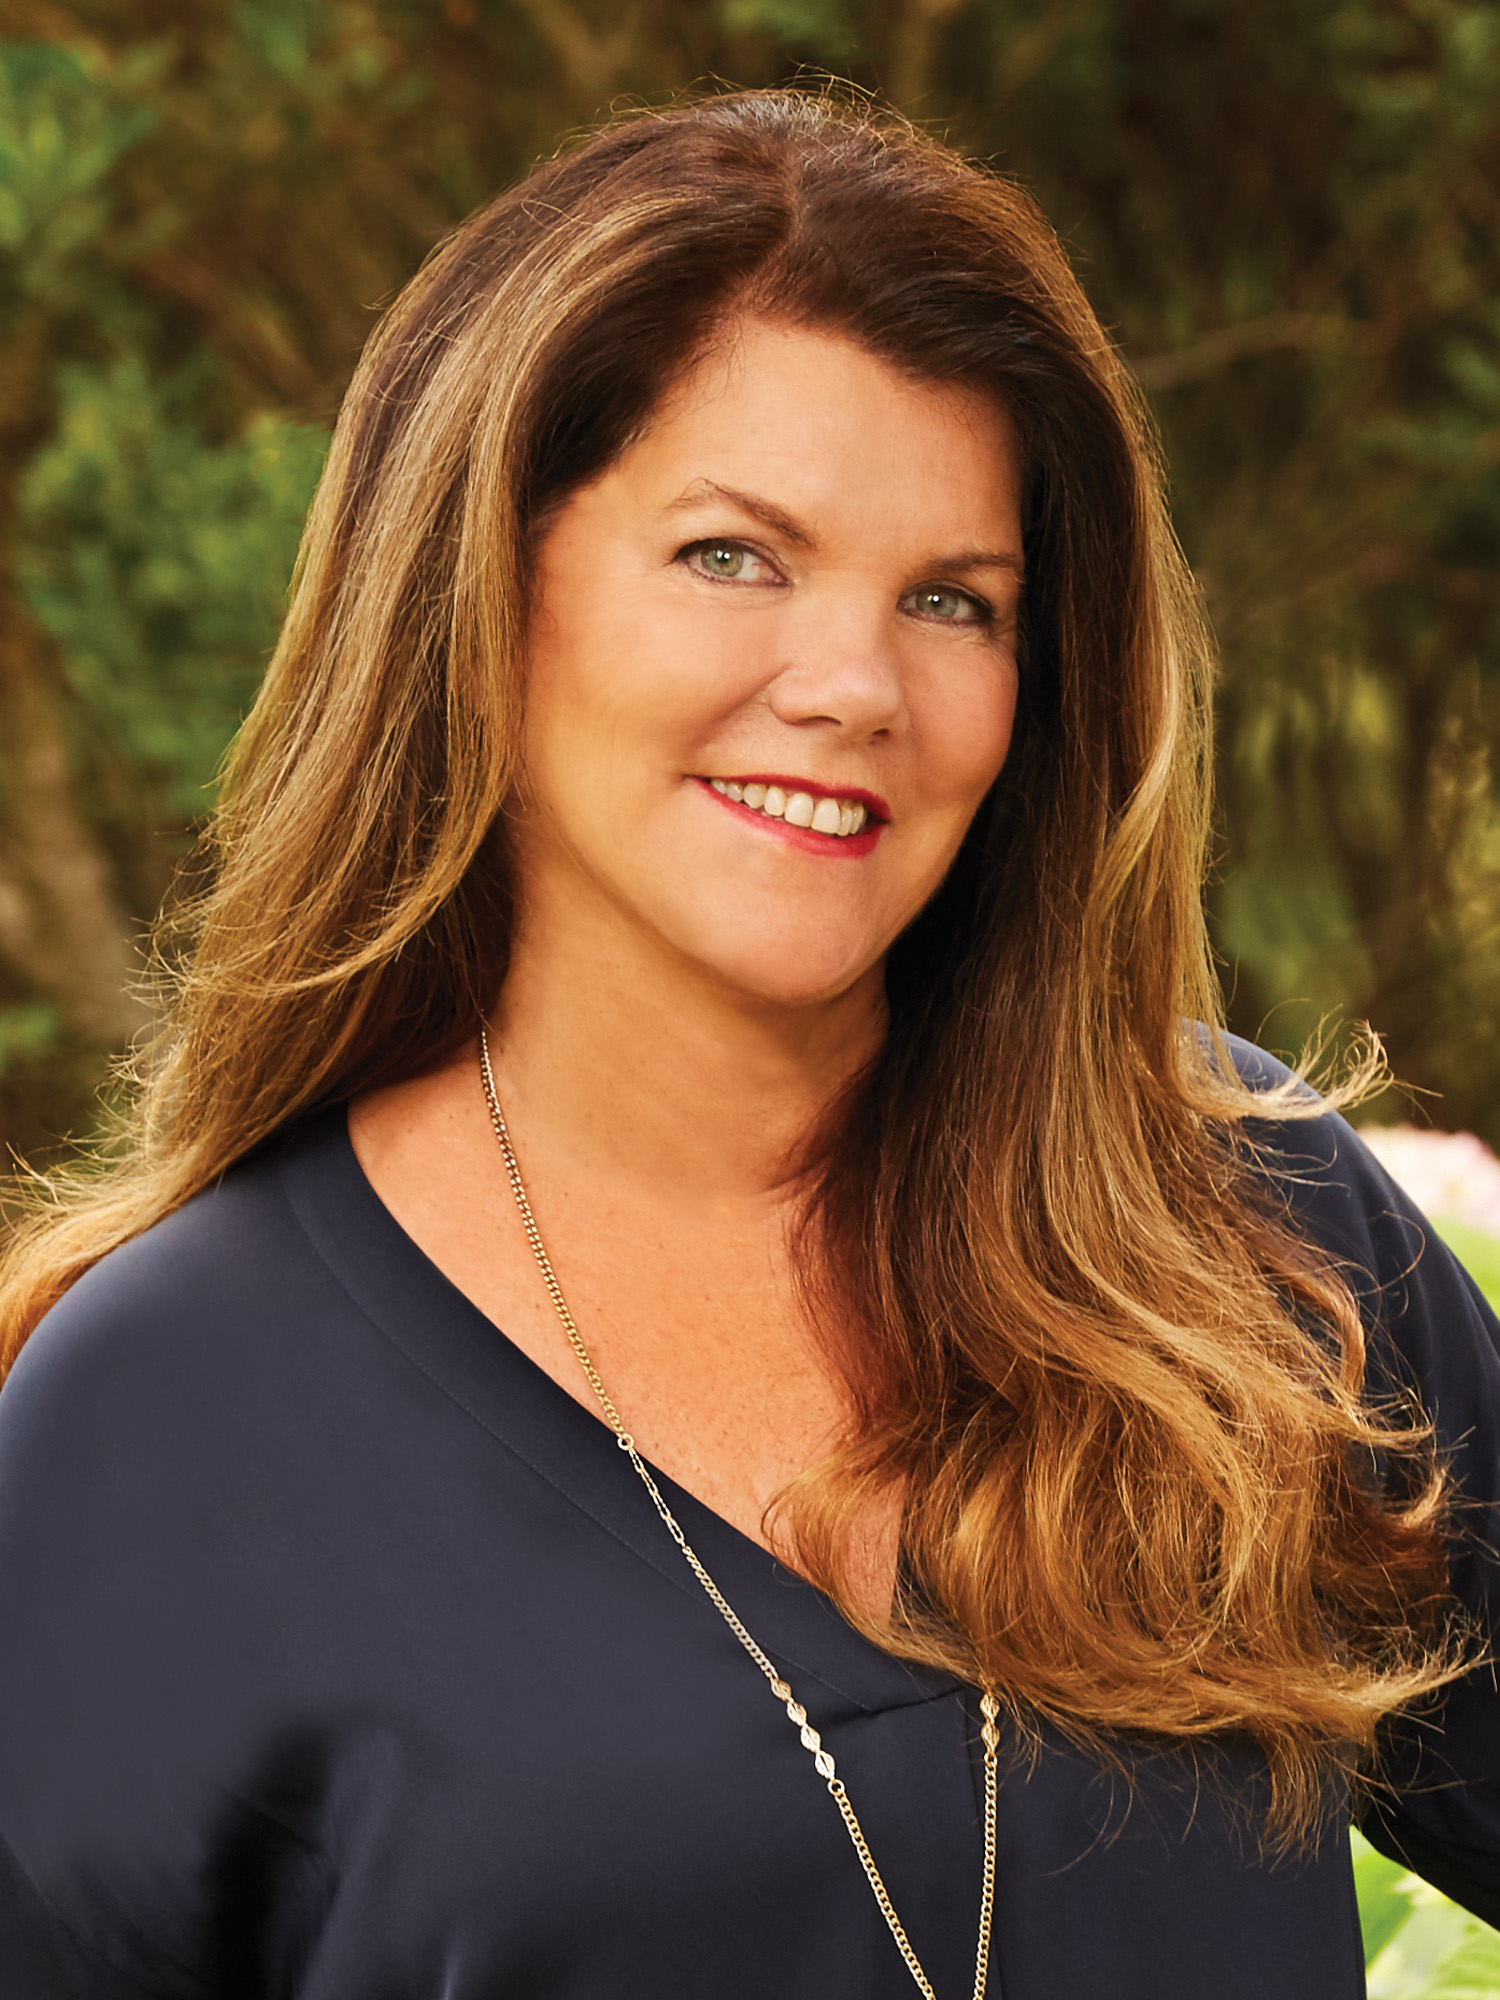 Lisa Gillooly, a top realtor in The Hamptons for Corcoran, a real estate firm in North Fork.